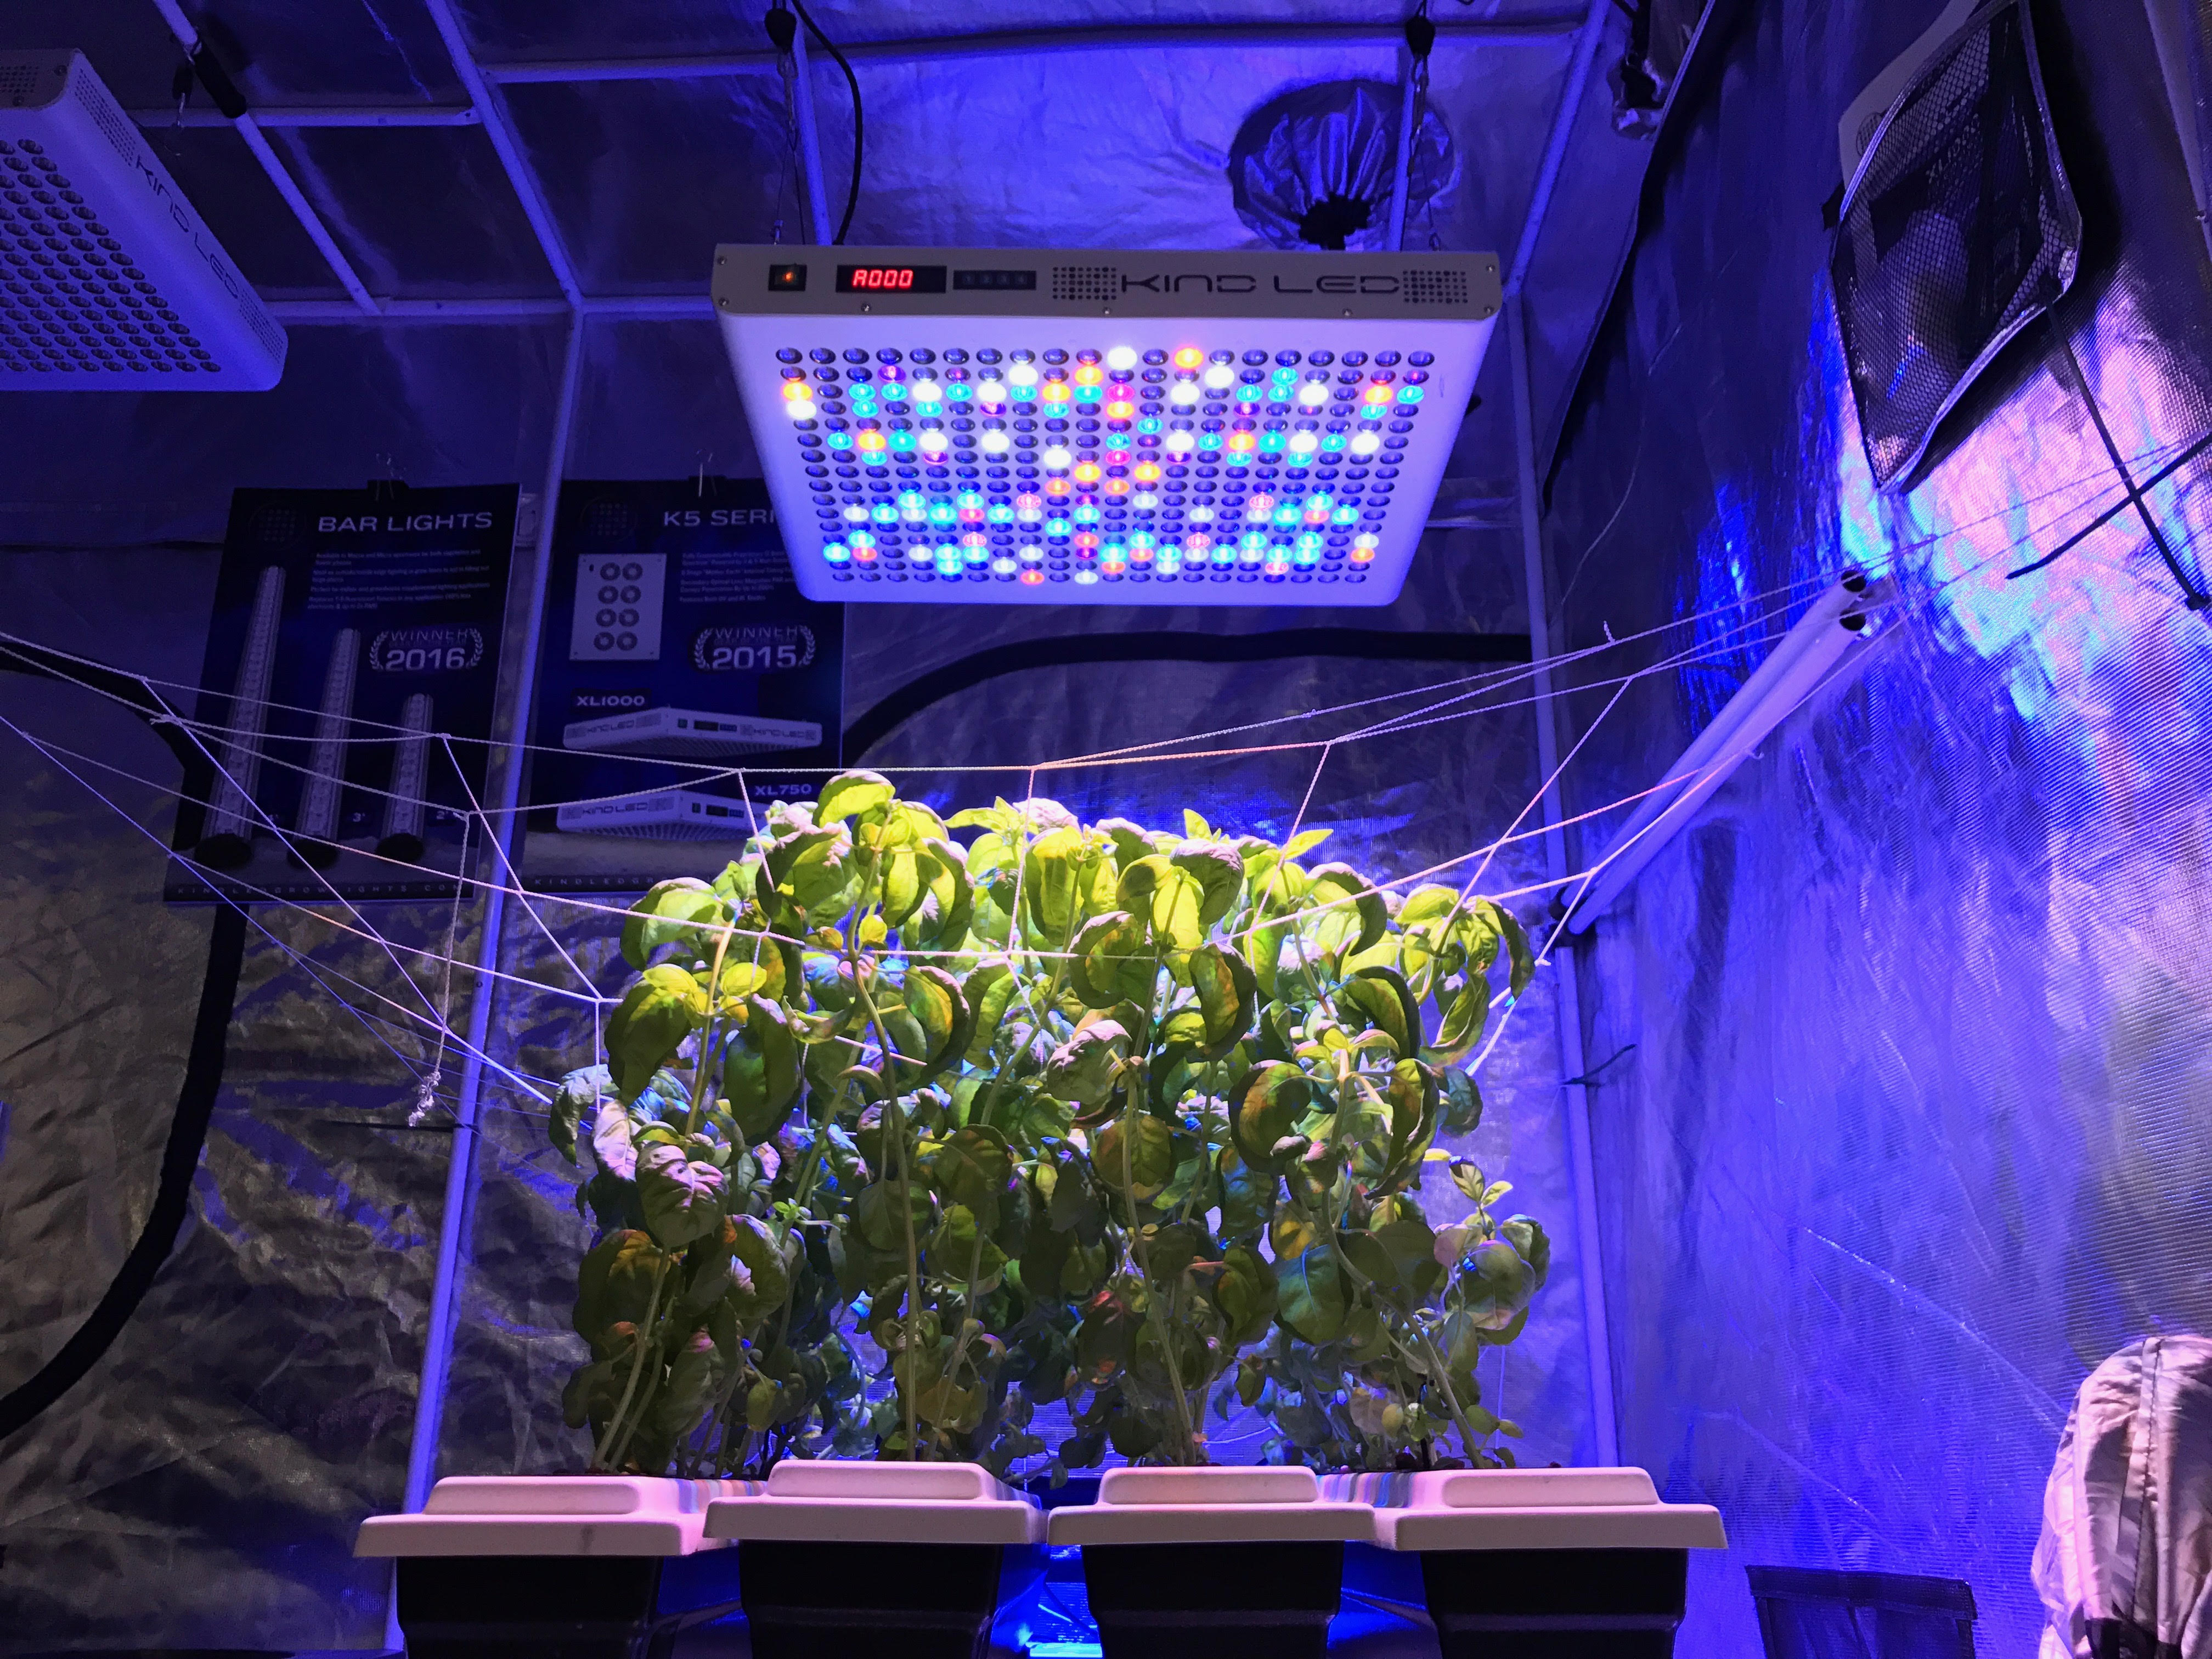 How to Prevent Odors in Your Grow Room